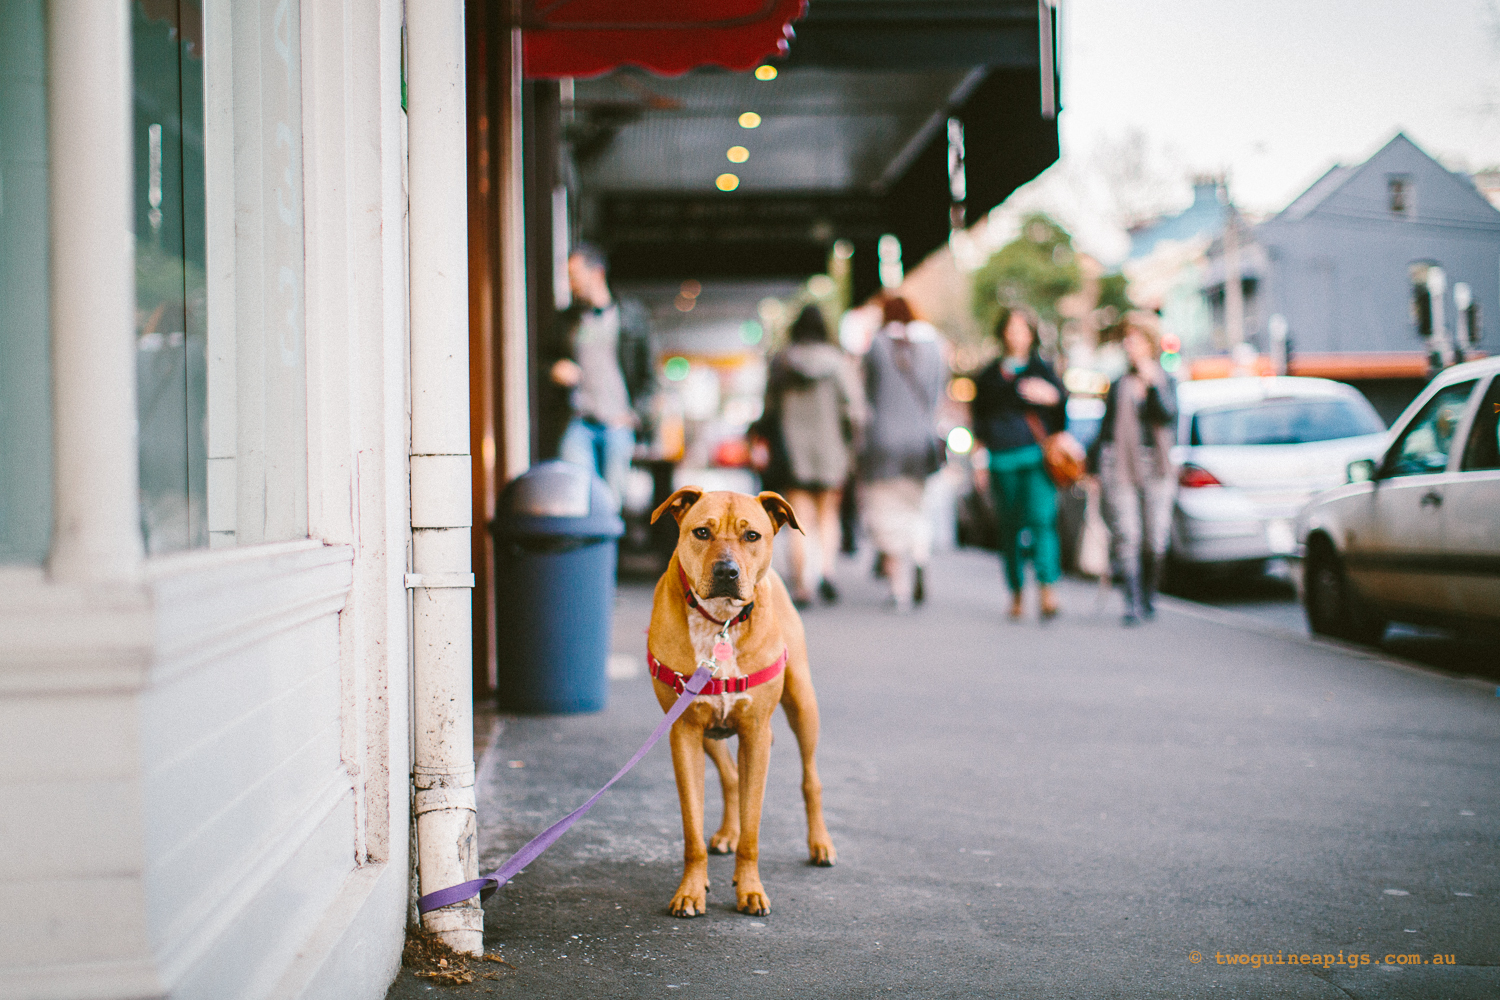 twoguineapigs_pet_photography_urban_animals_street_photography_surry_hills